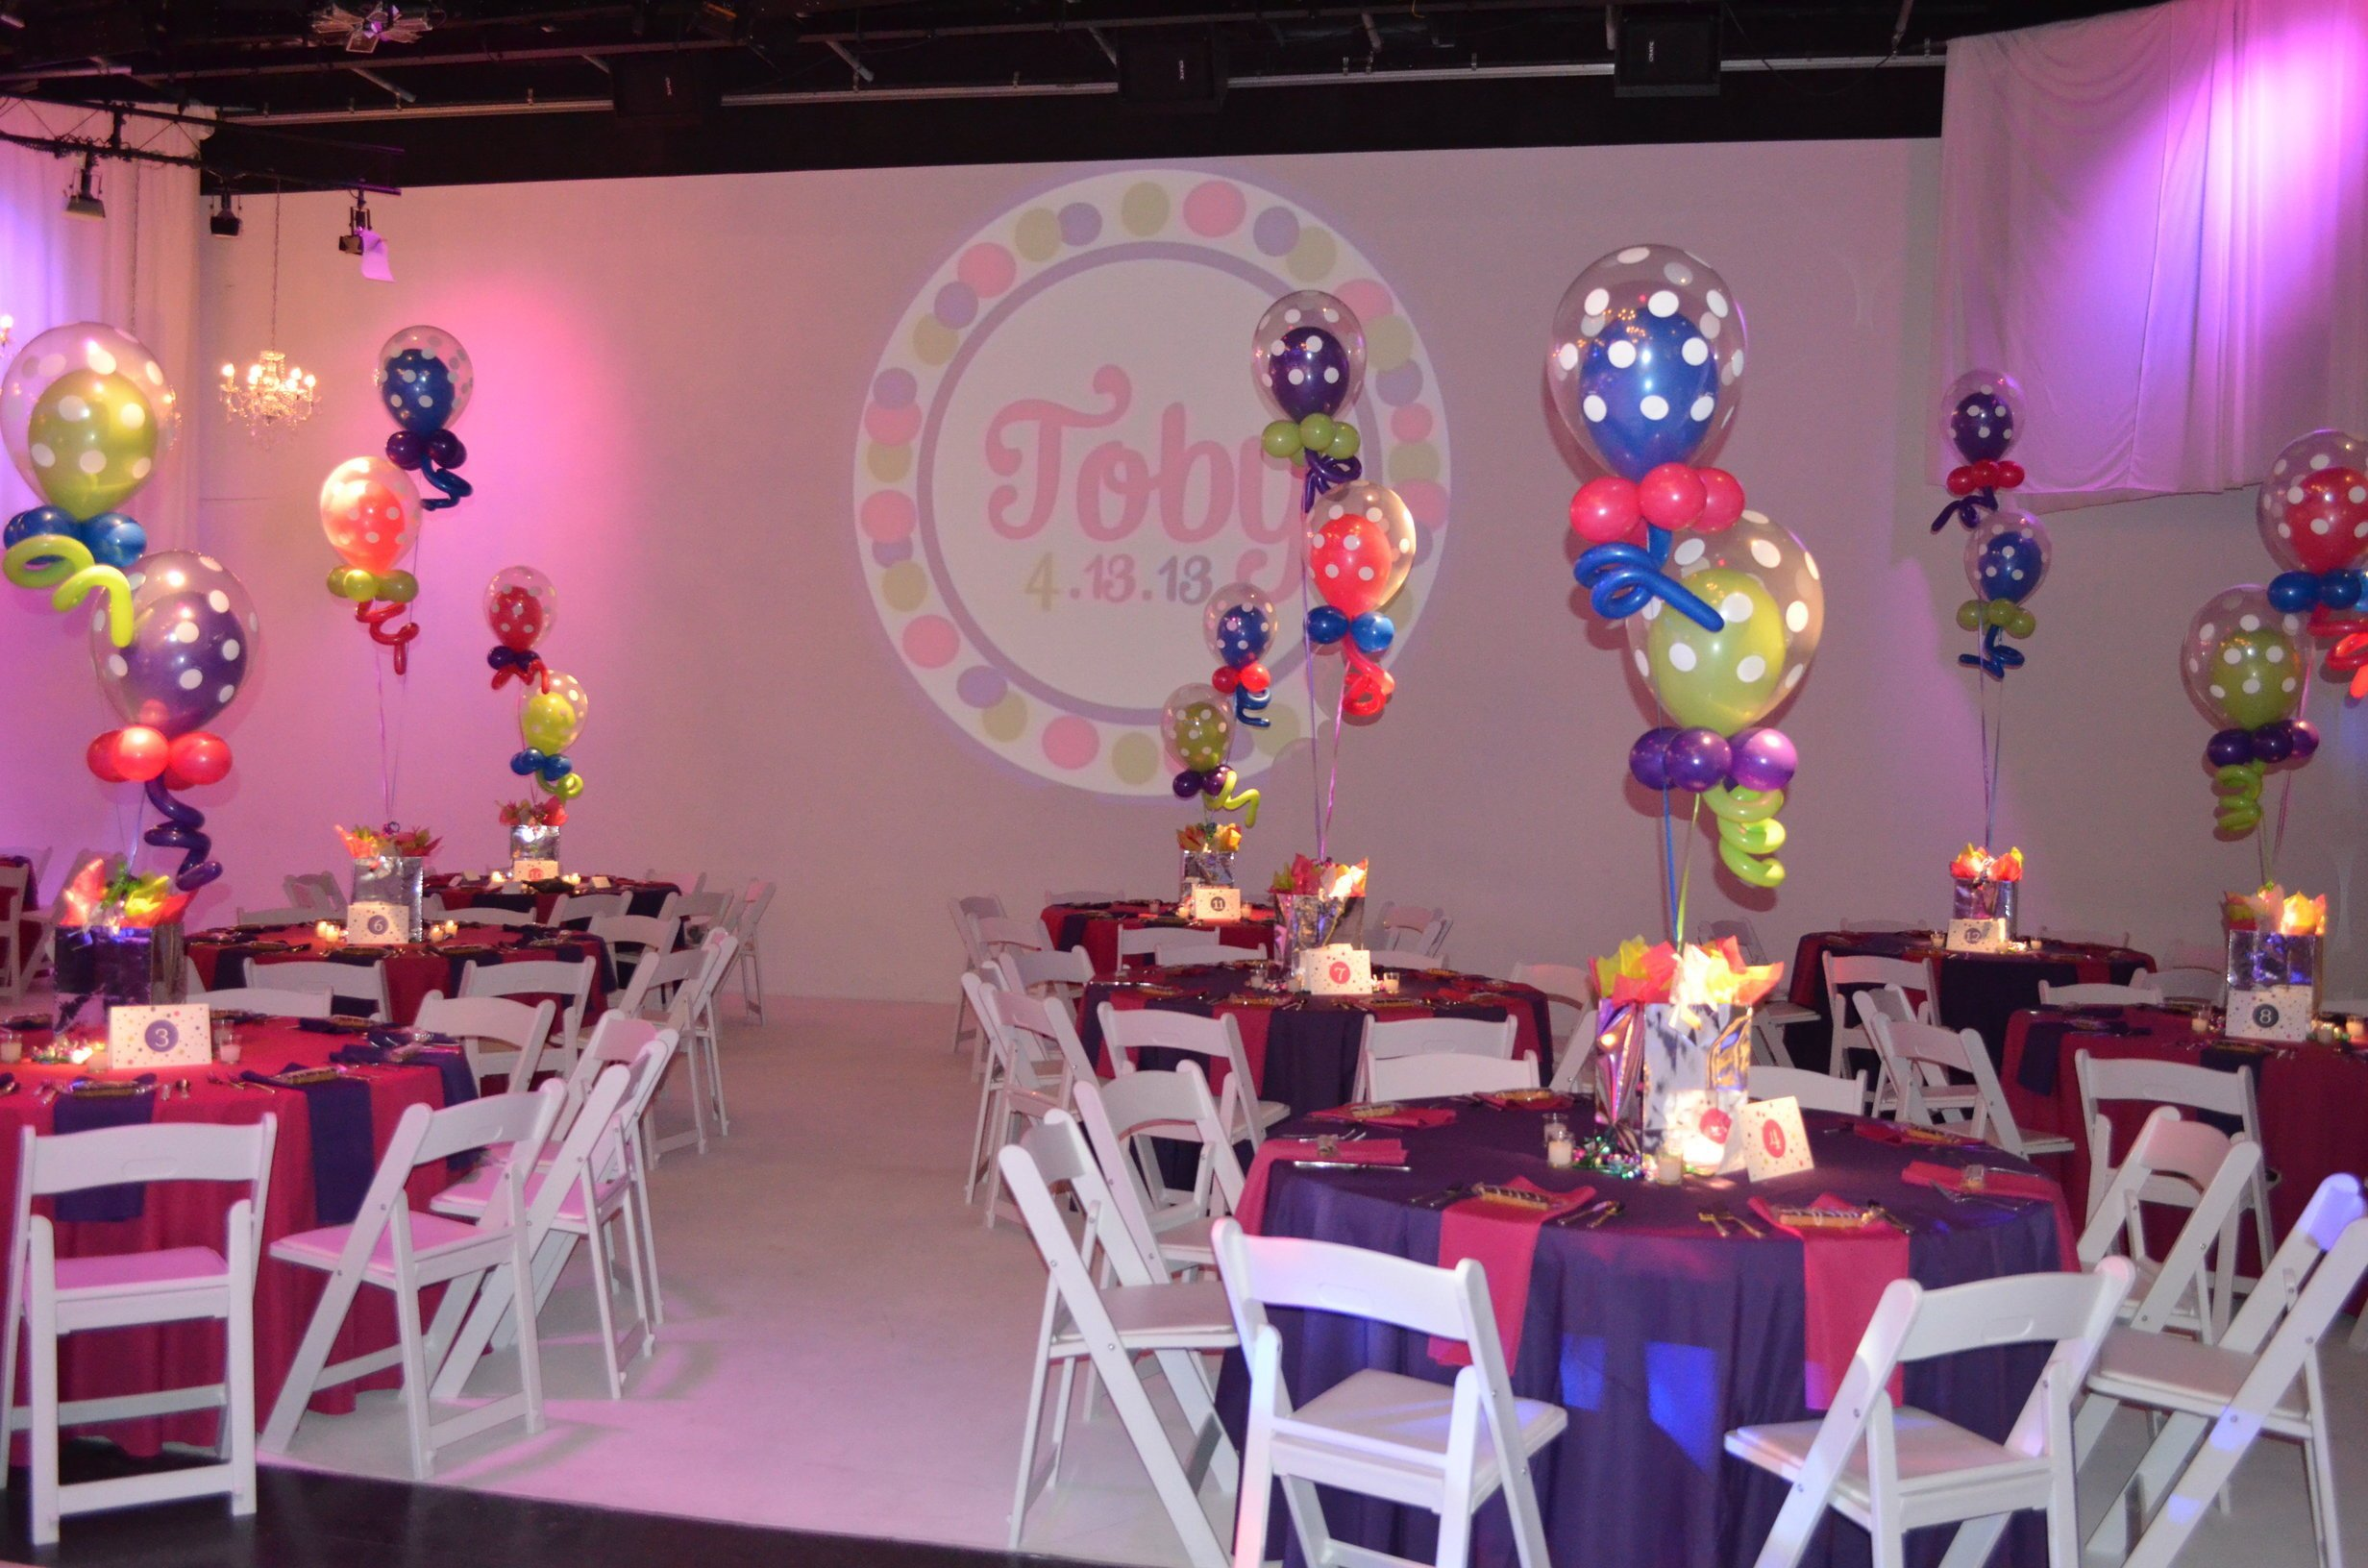 Toby's Pittsburgh Bar Mitzvah by Perfectly Planned By Shari & Shari Zatman